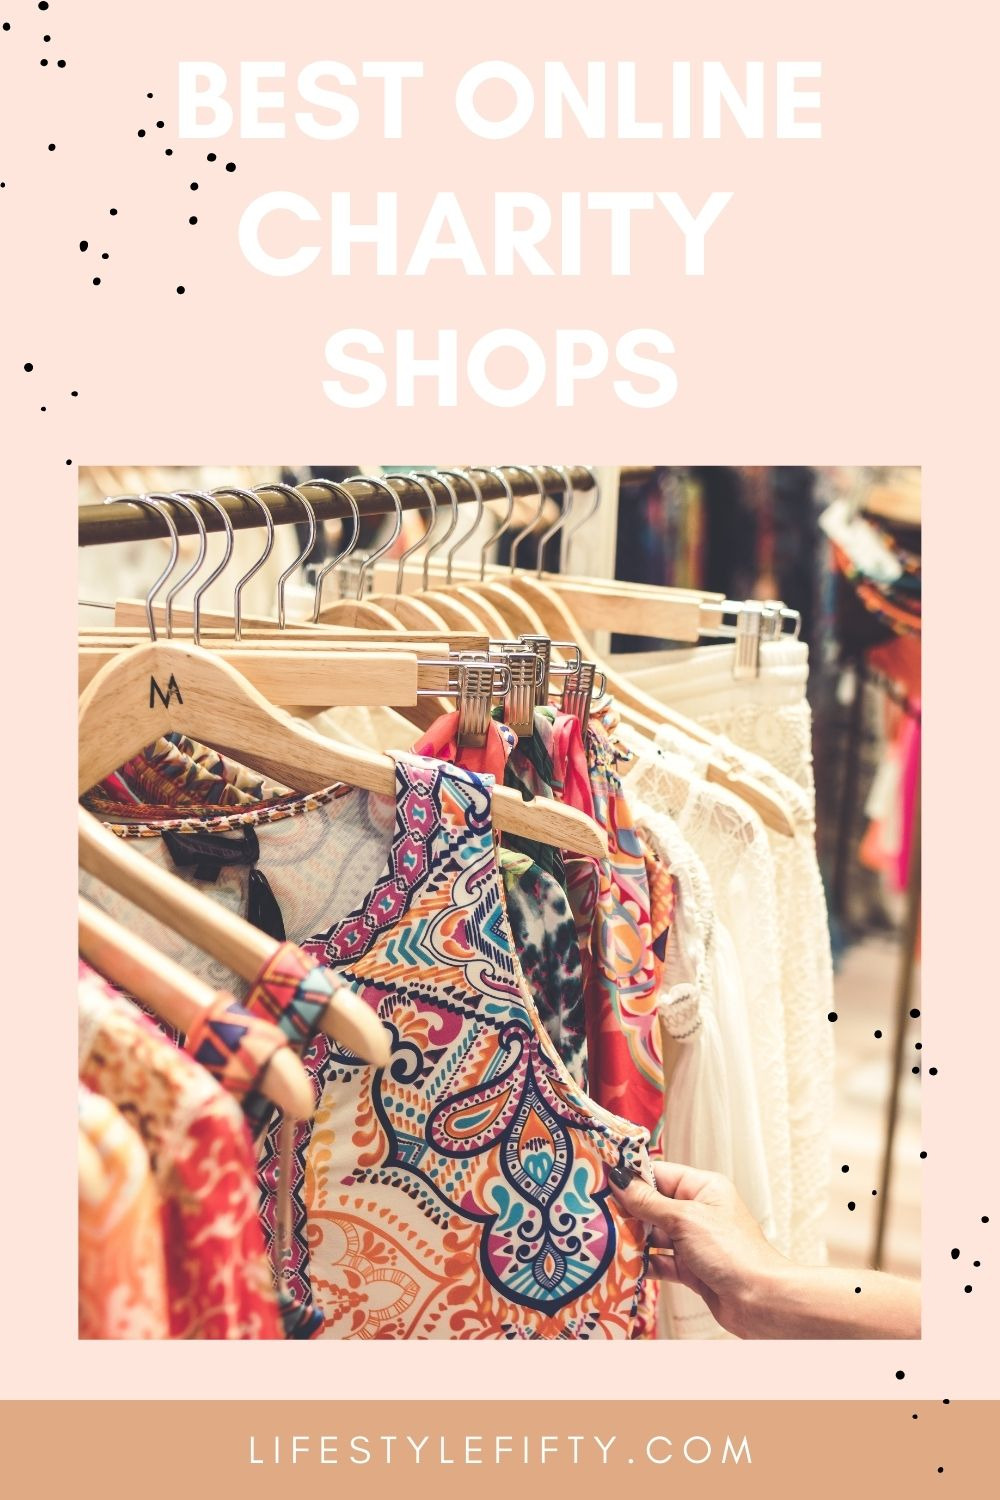 Best Online Thrift Shops and charity shops - image of hanging clothes - white text on salmon coloured background